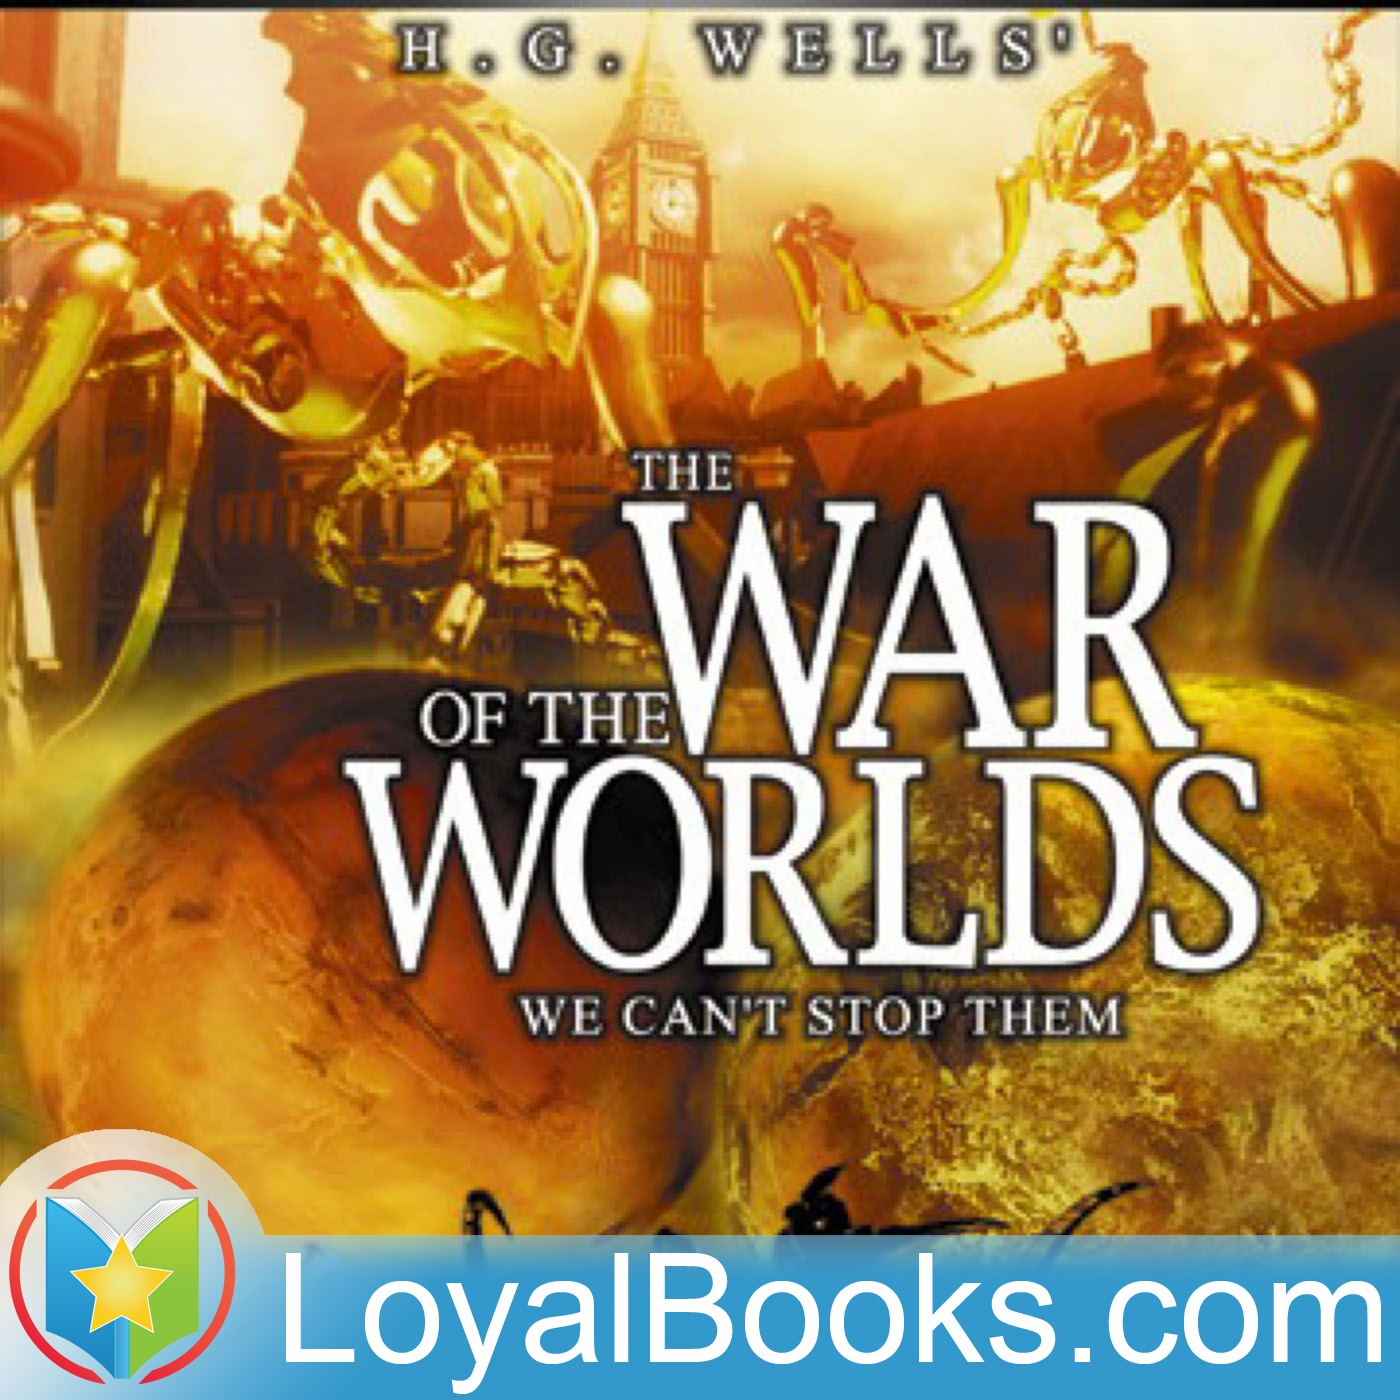 <![CDATA[The War of the Worlds by H. G. Wells]]>